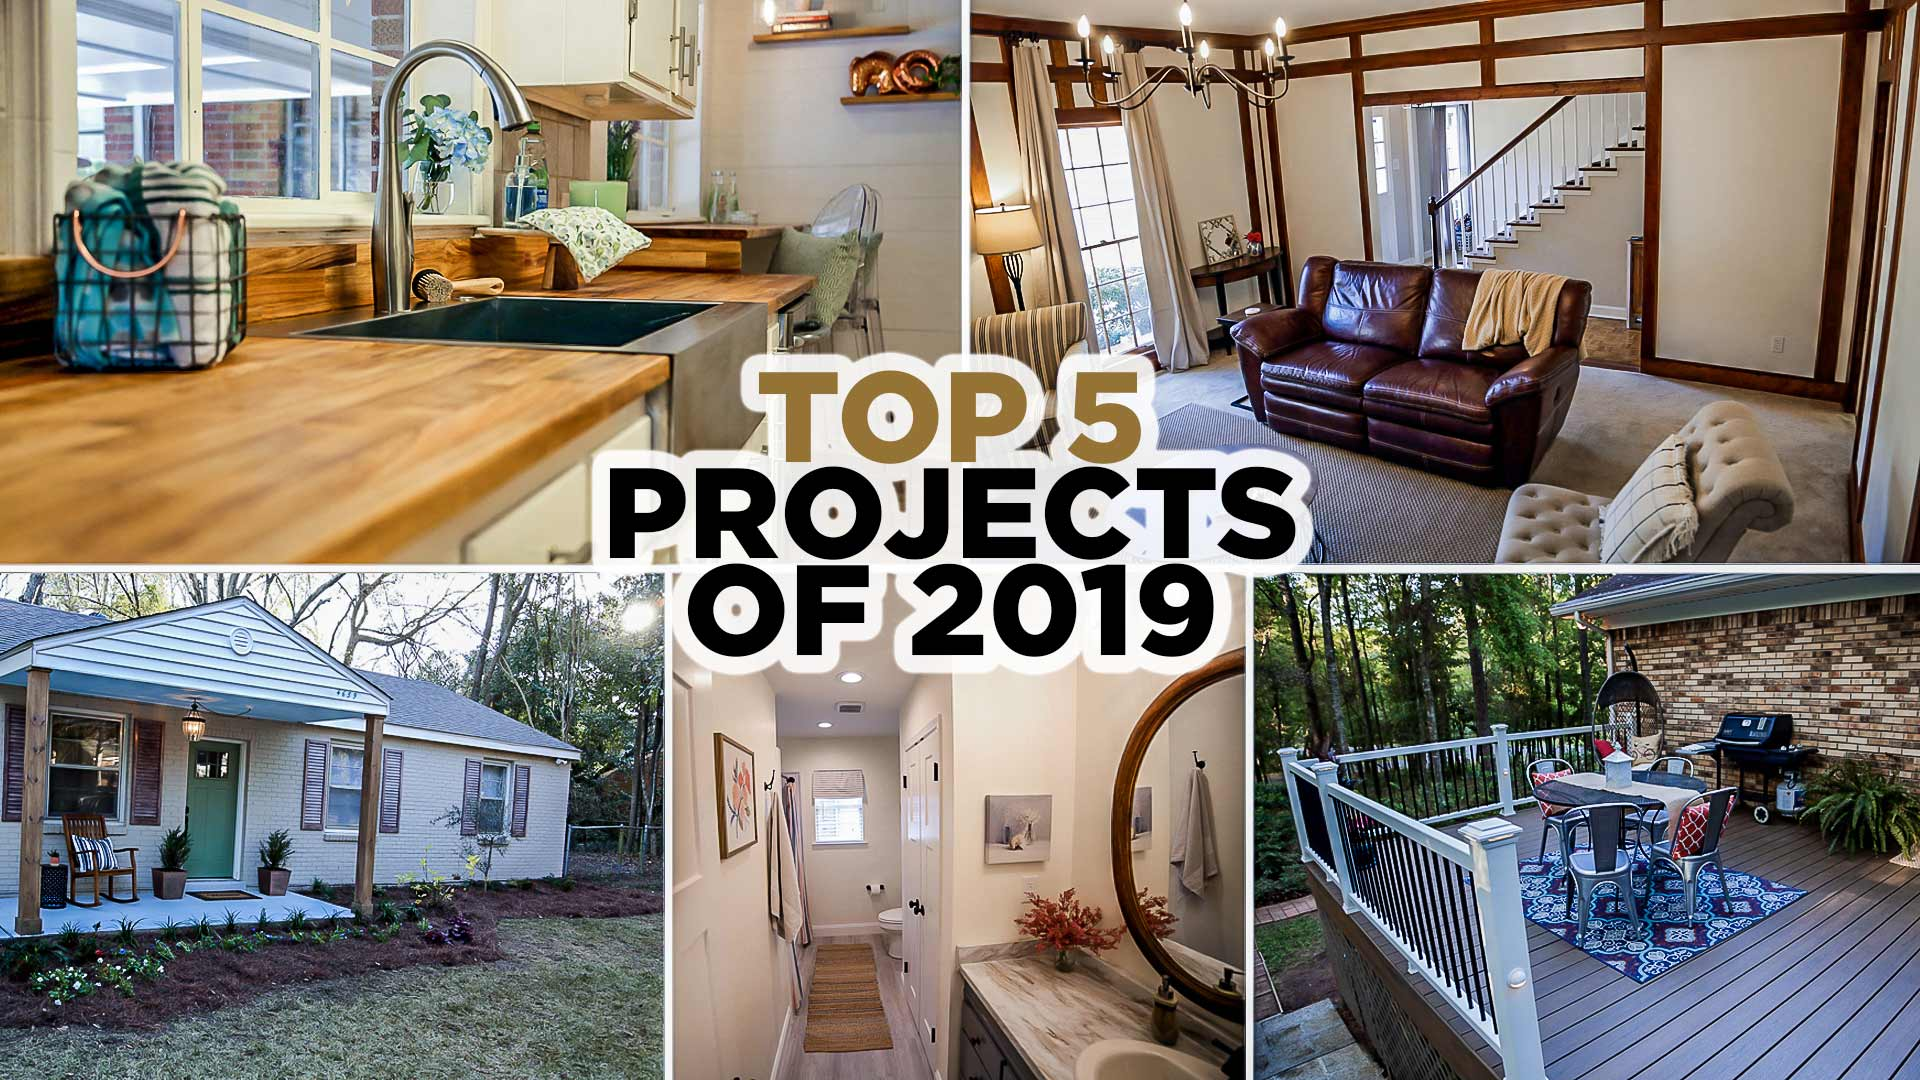 Top 5 Home Improvement Projects of 2019